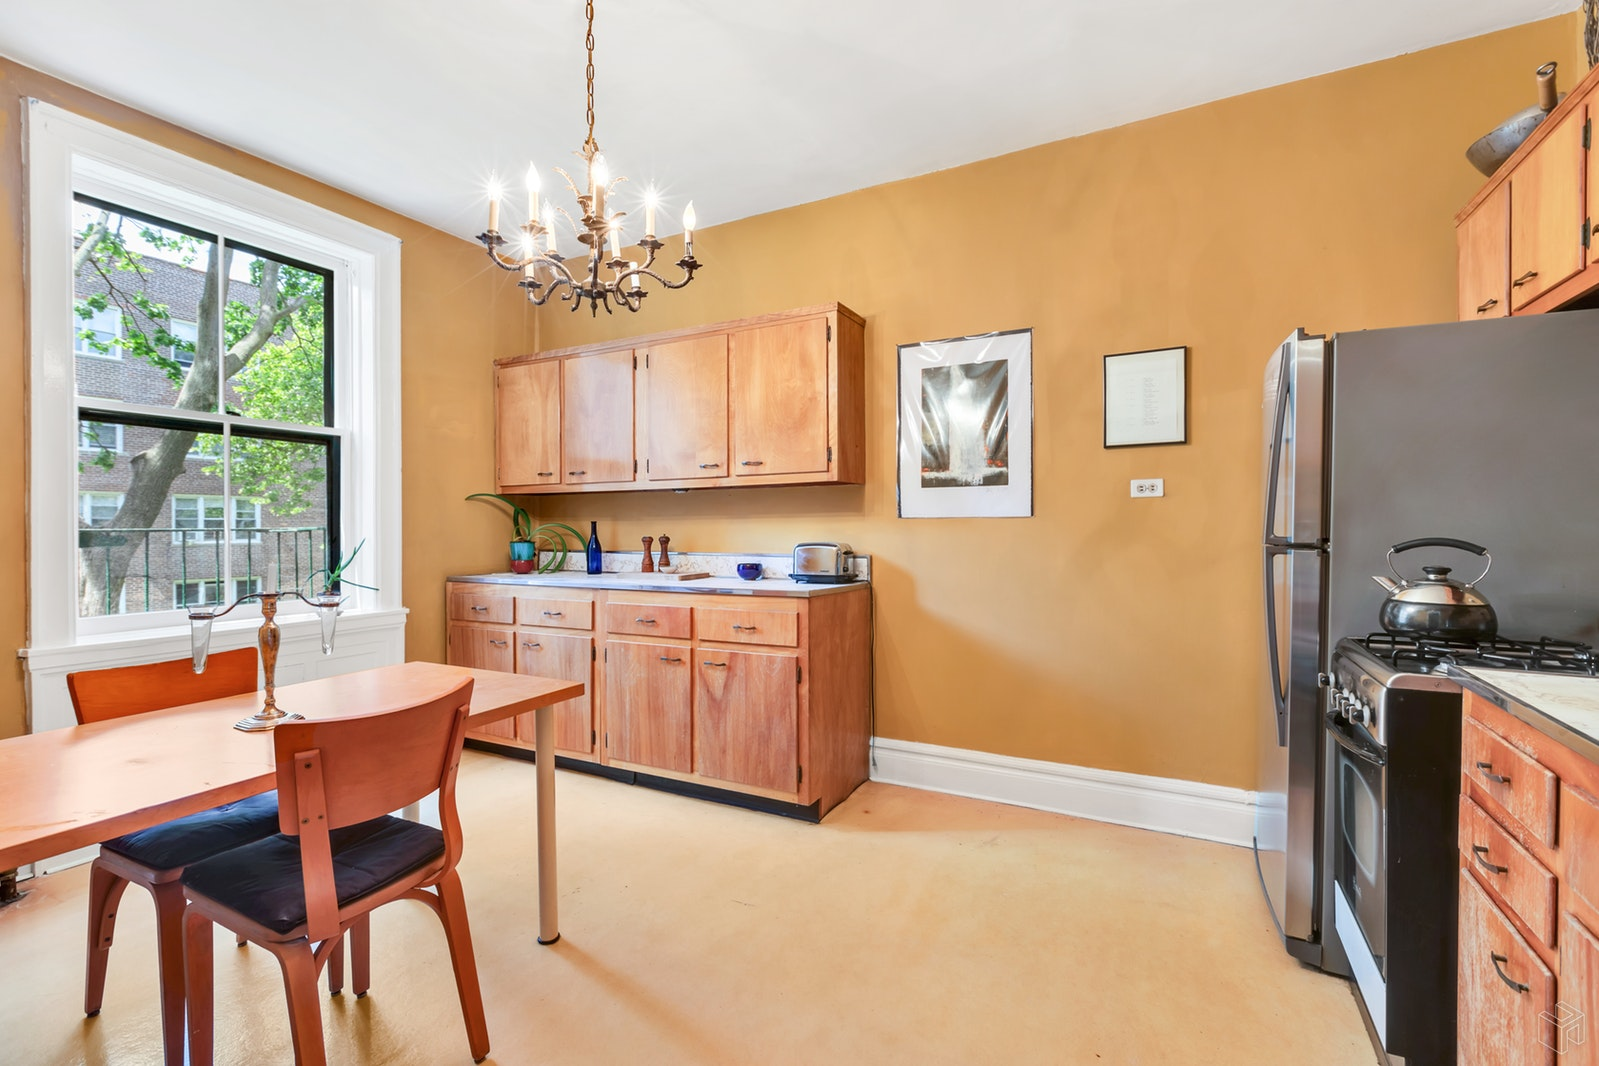 1 Br With PRE-WAR Elegance!, Jackson Heights, Queens, NY, 11372, $310,000, Sold Property, Halstead Real Estate, Photo 3